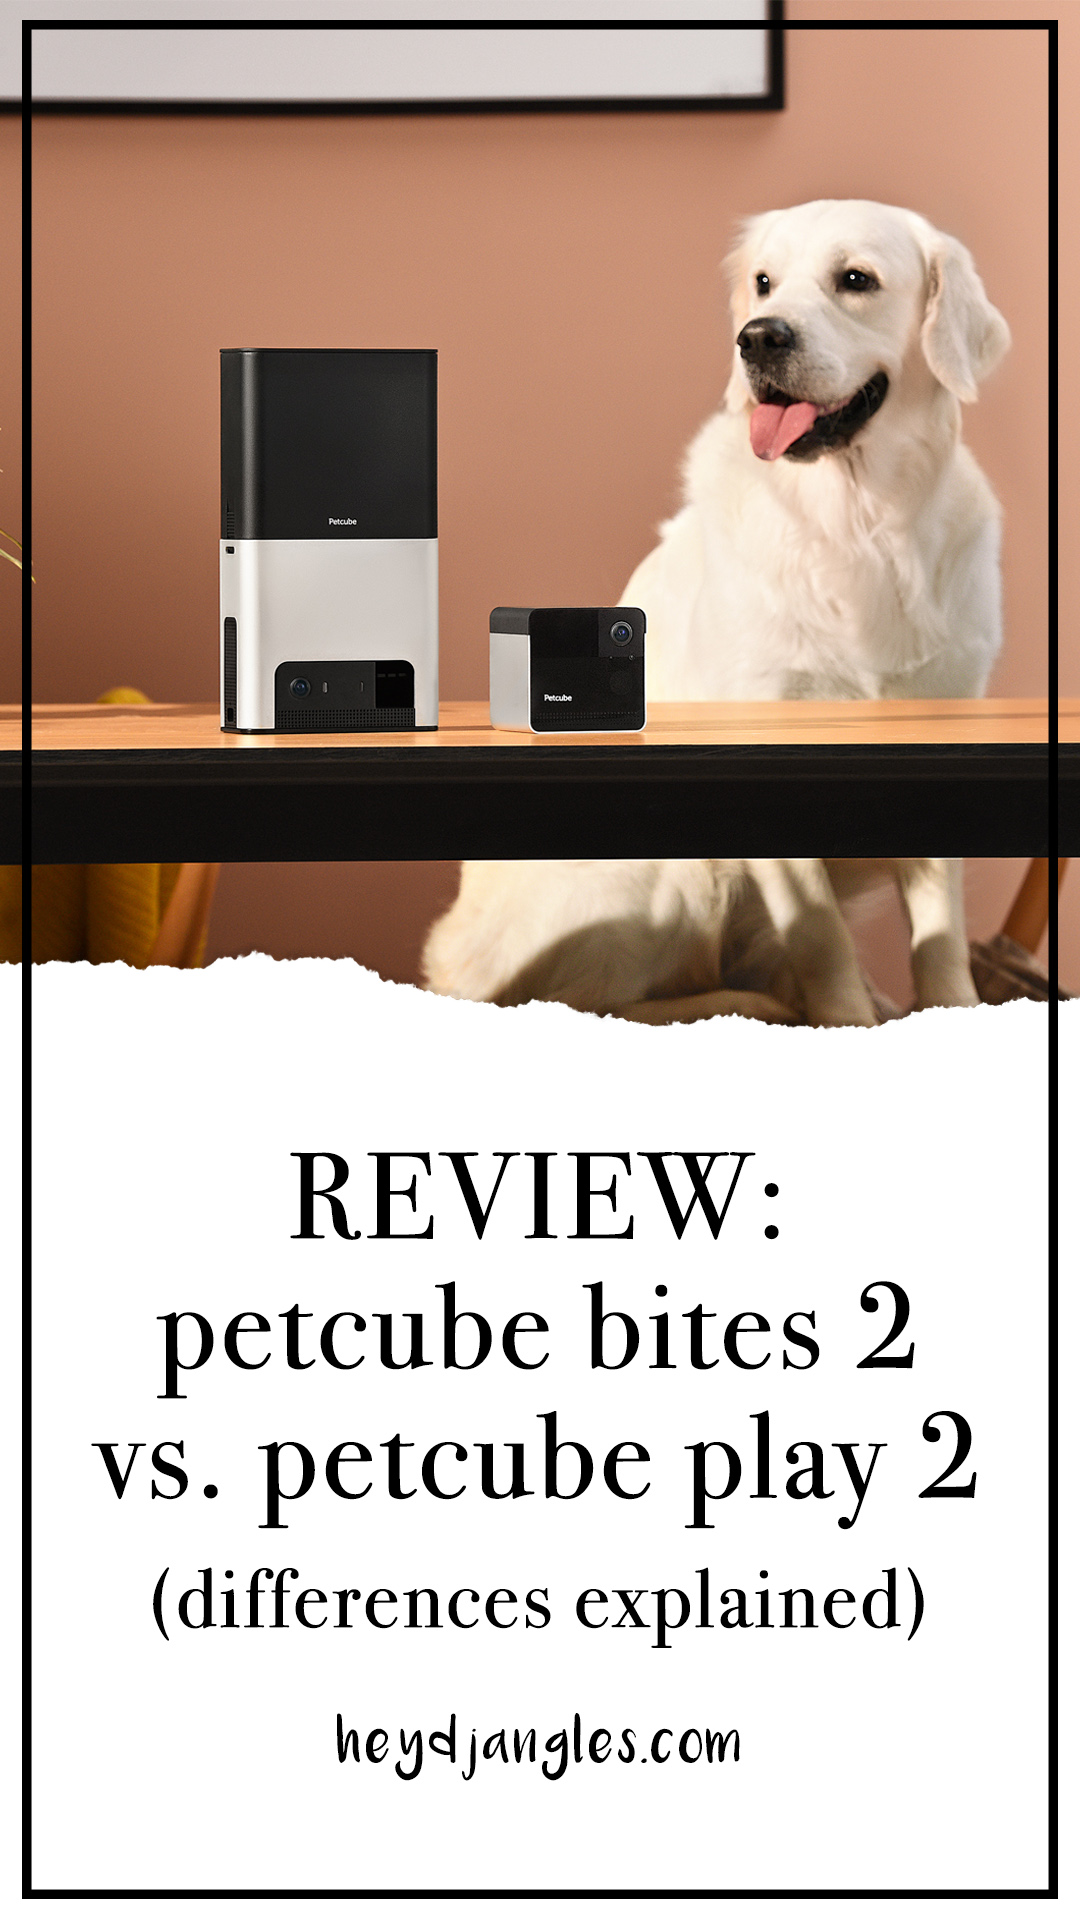 Petcube Review: Bites 2 vs Play 2 (Differences explained) - heydjangles.com - pet camera product review, pet camera comparison, best dog camera, best cat camera, pet monitor, treat-dispensing dog camera, laser toy pet camera, pet tech, pet surveillance camera #petcamera #pettech